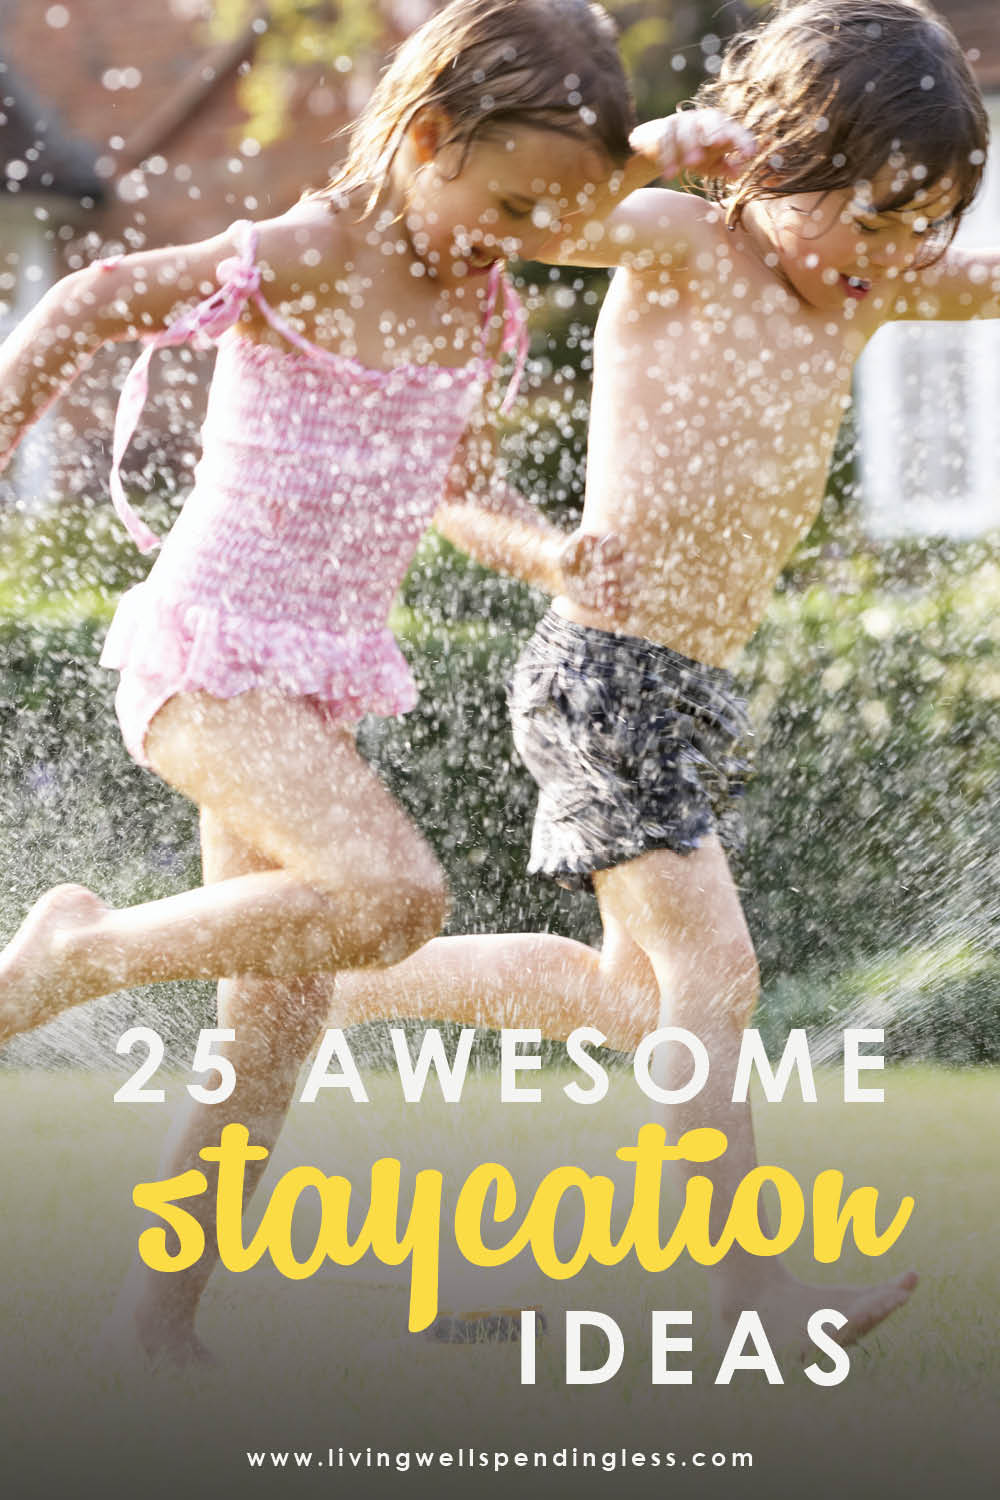 Think a family getaway means going far away? These 25 awesome ideas for vacationing right in your own hometown might just change your mind! Awesome Staycation Ideas | Staycation Tips | Staycation Planning | Family Getaways | Family Activities | Family Vacations #staycationtips #staycation #familyactivities #familyvacations